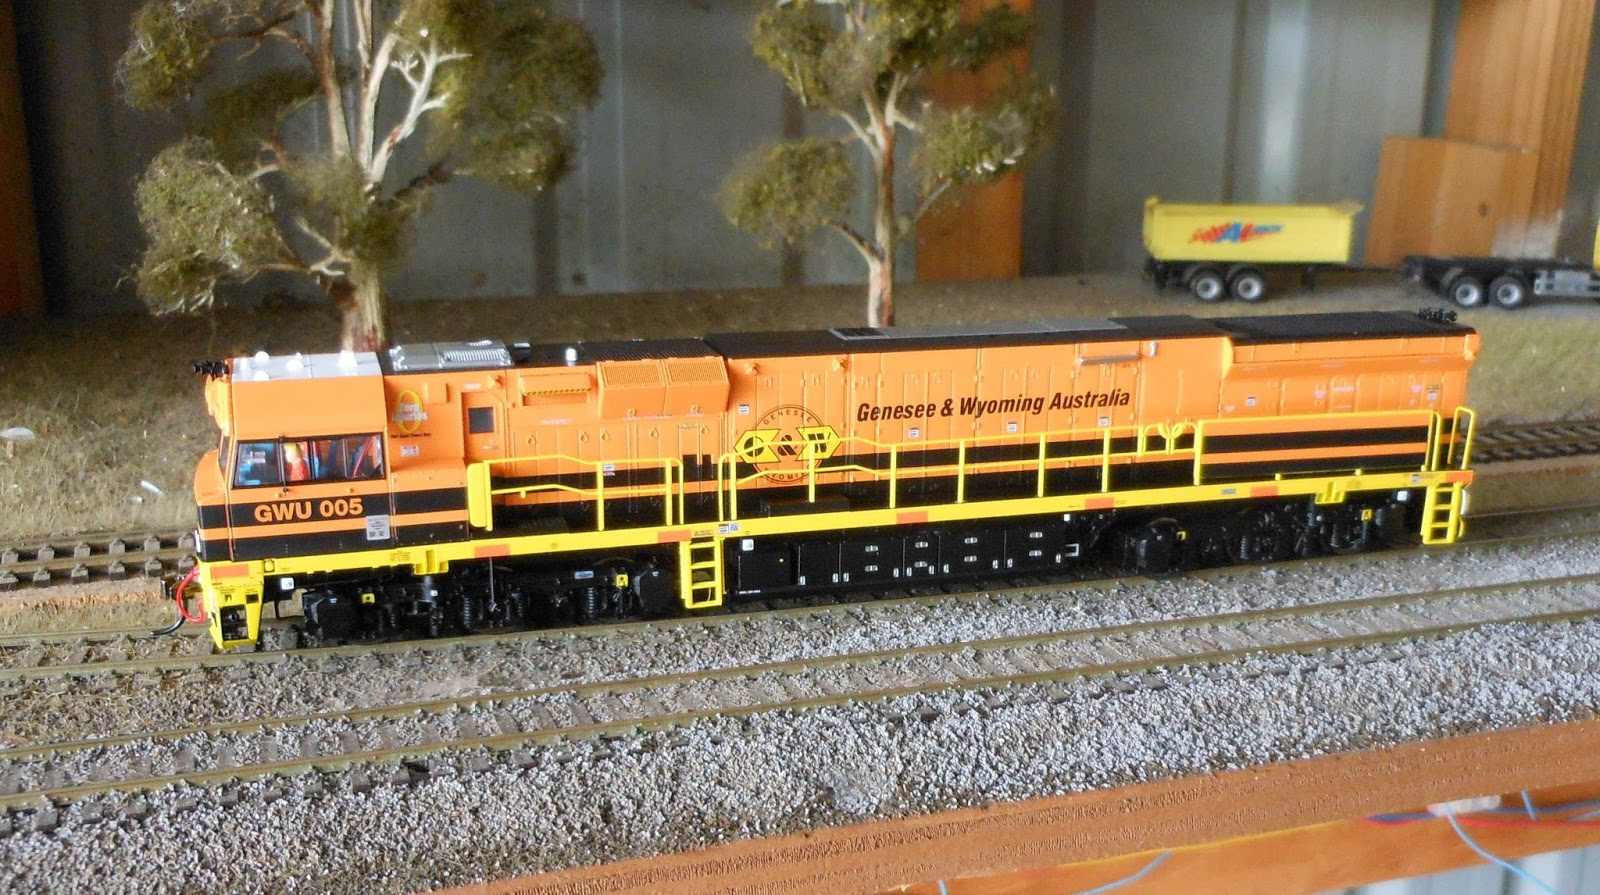 Andrews Main South Line Auscision C43 44 And The Beginning Of 2017 Head Lights For Model Trains First To Be Programmed Was 6001 Which Immediately Hit A Snag With Been On All Time No Problems Gwu 005 It Fine